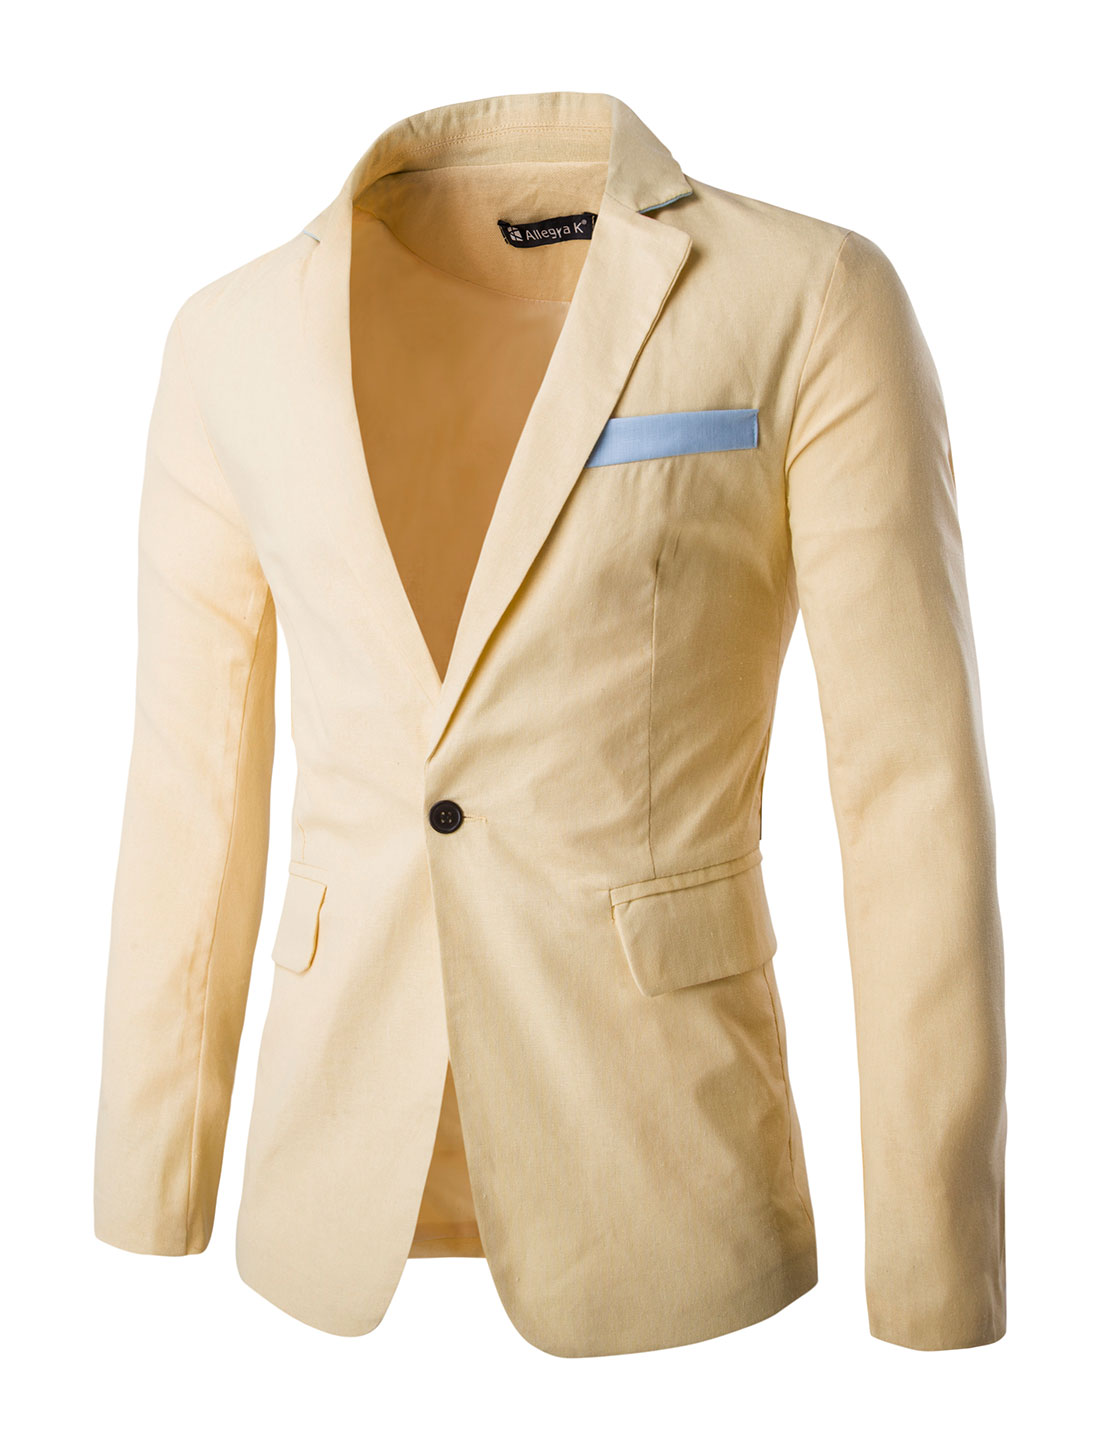 Men Notched Lapel Flap Pockets One-Button Blazer Bright Yellow M